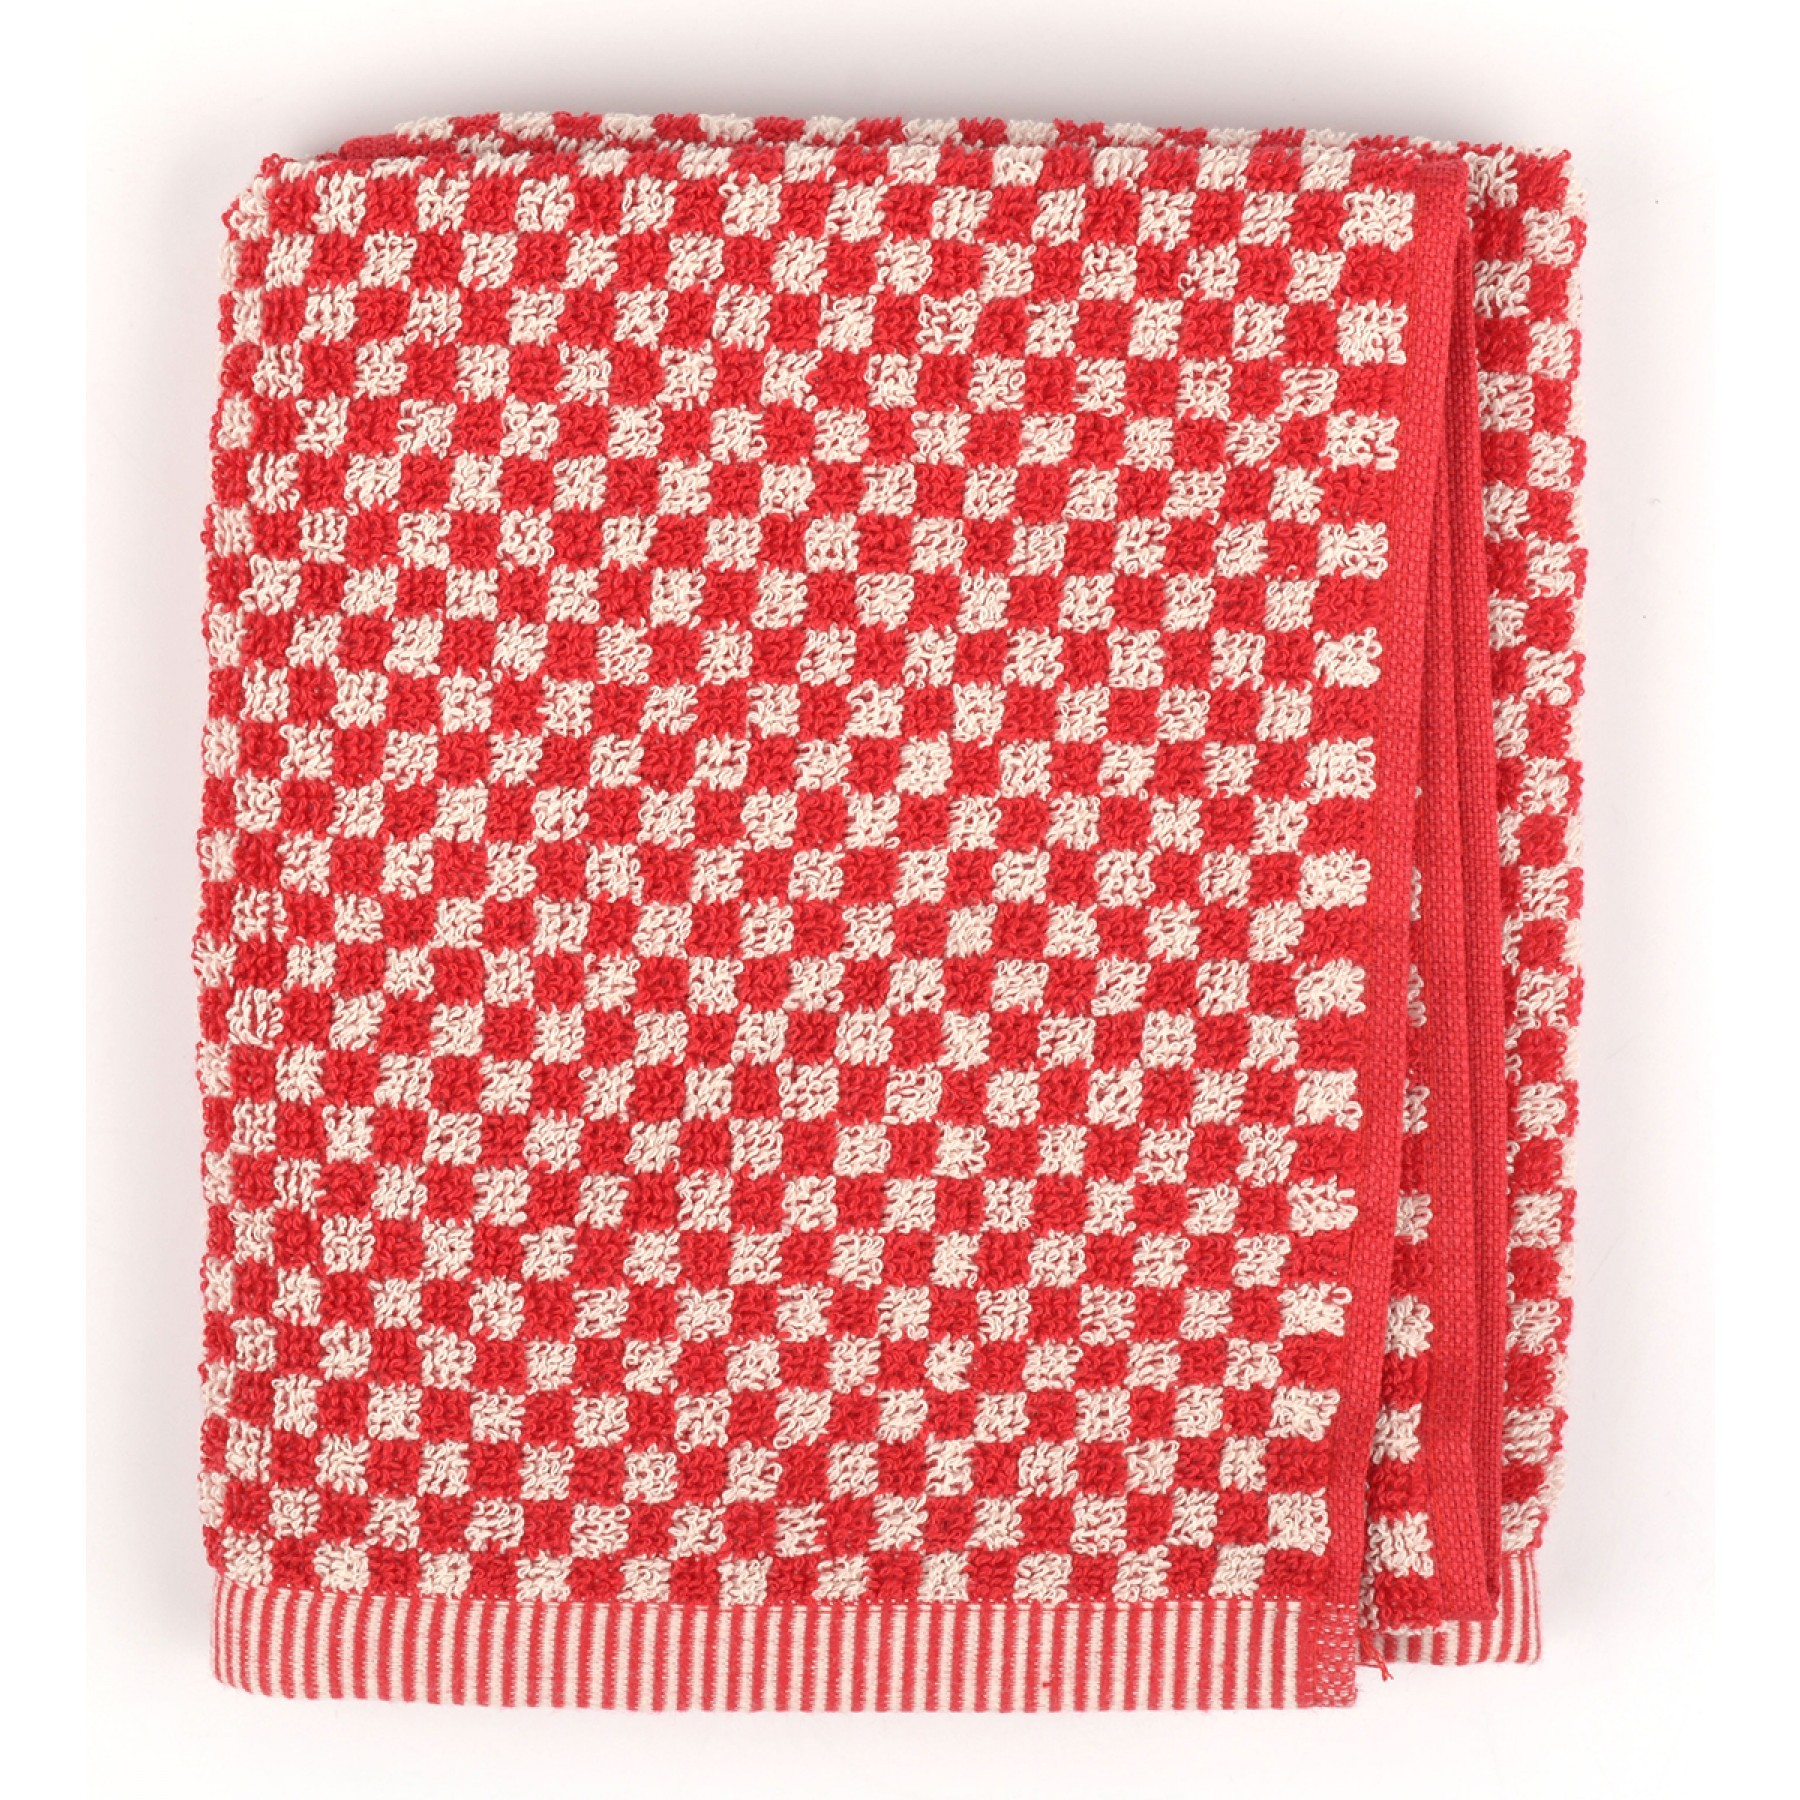 Bunzlau Castle Keukendoek Small Check Red